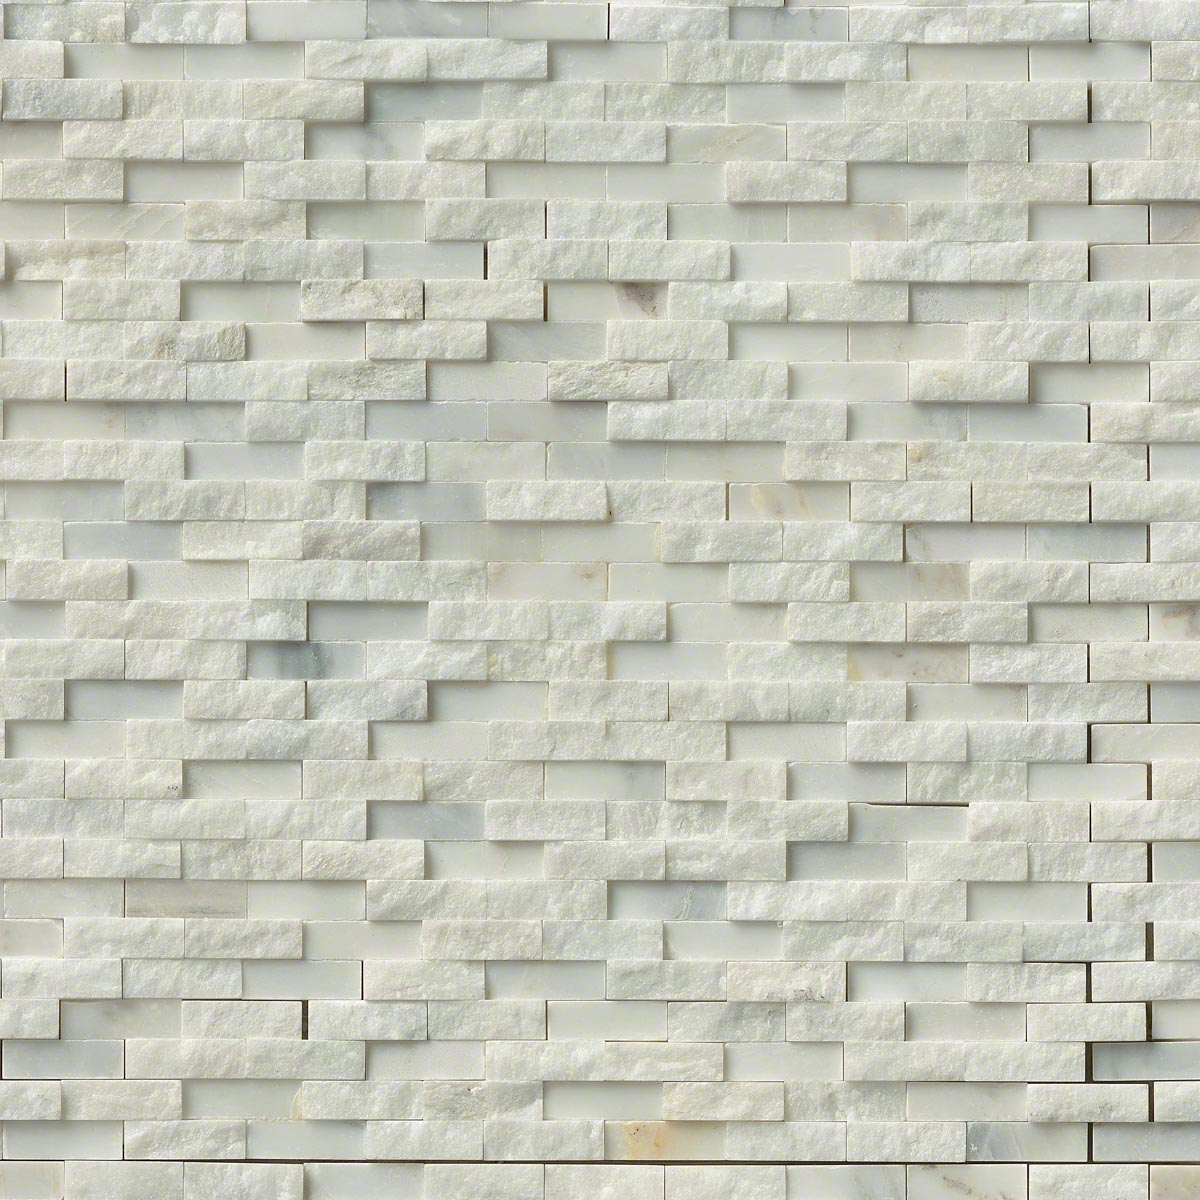 MS International Marble Mosaics Splitface Greecian White